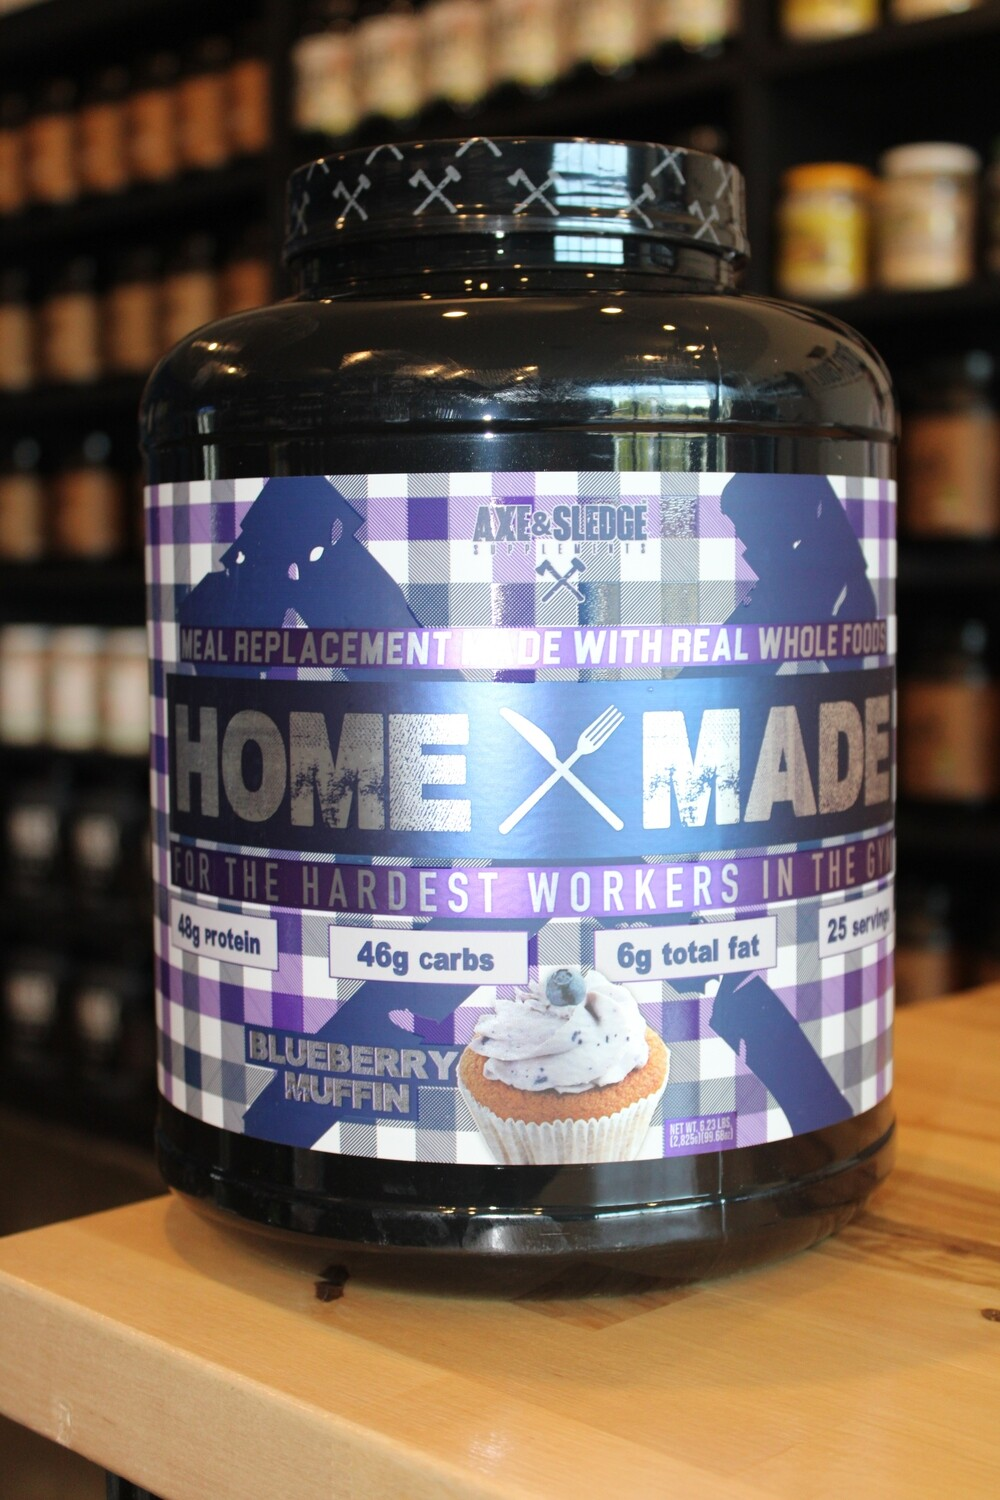 Axe & Sledge HomeMade Protein (Blueberry Muffin)